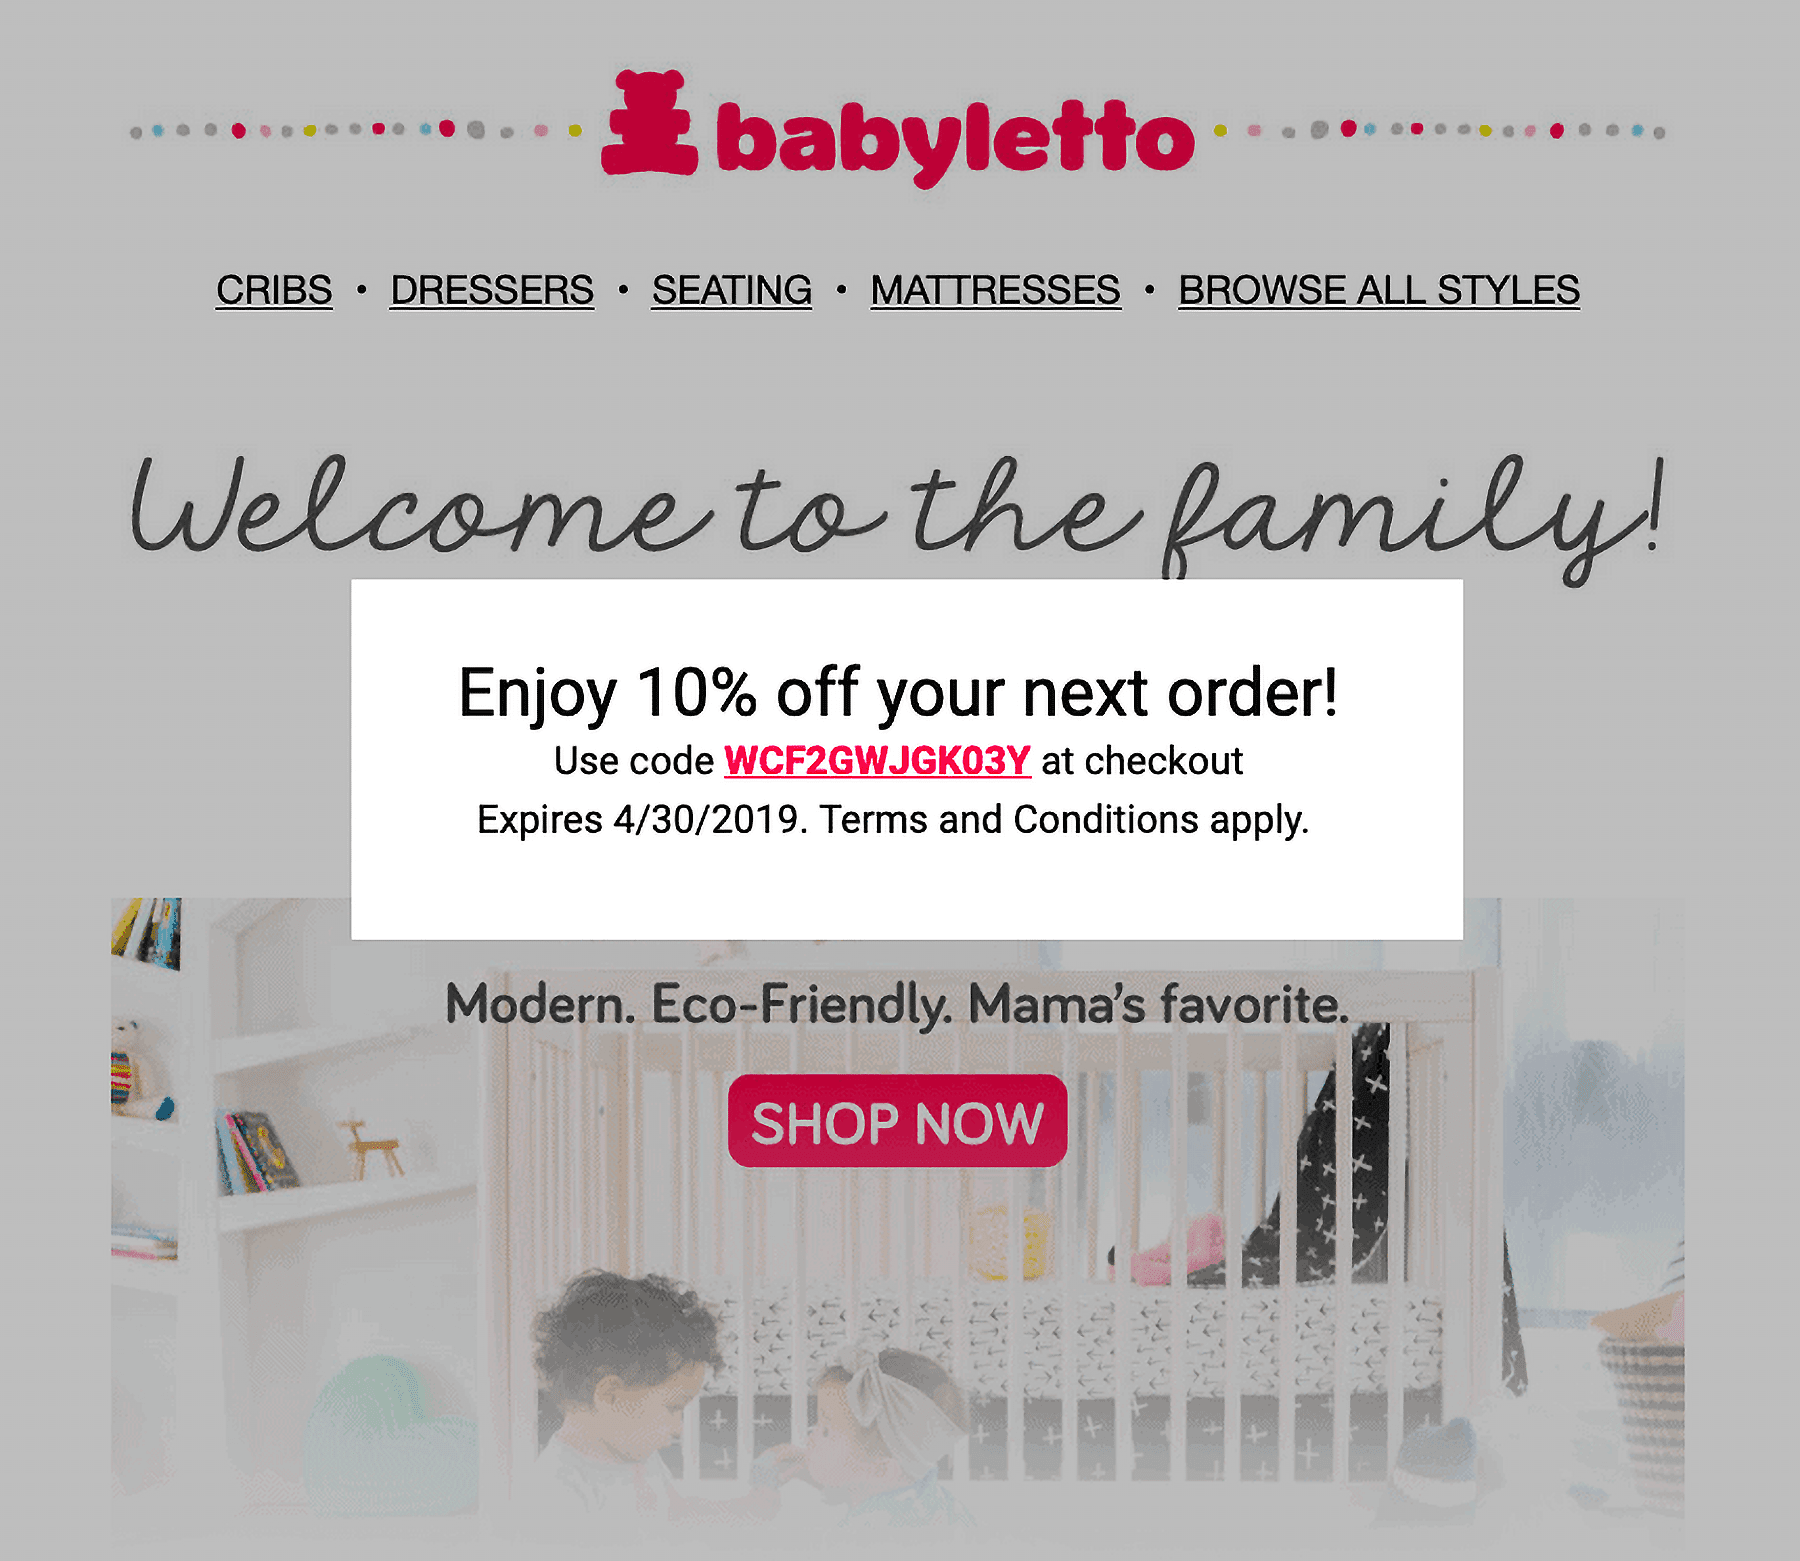 Babyletto – Offer